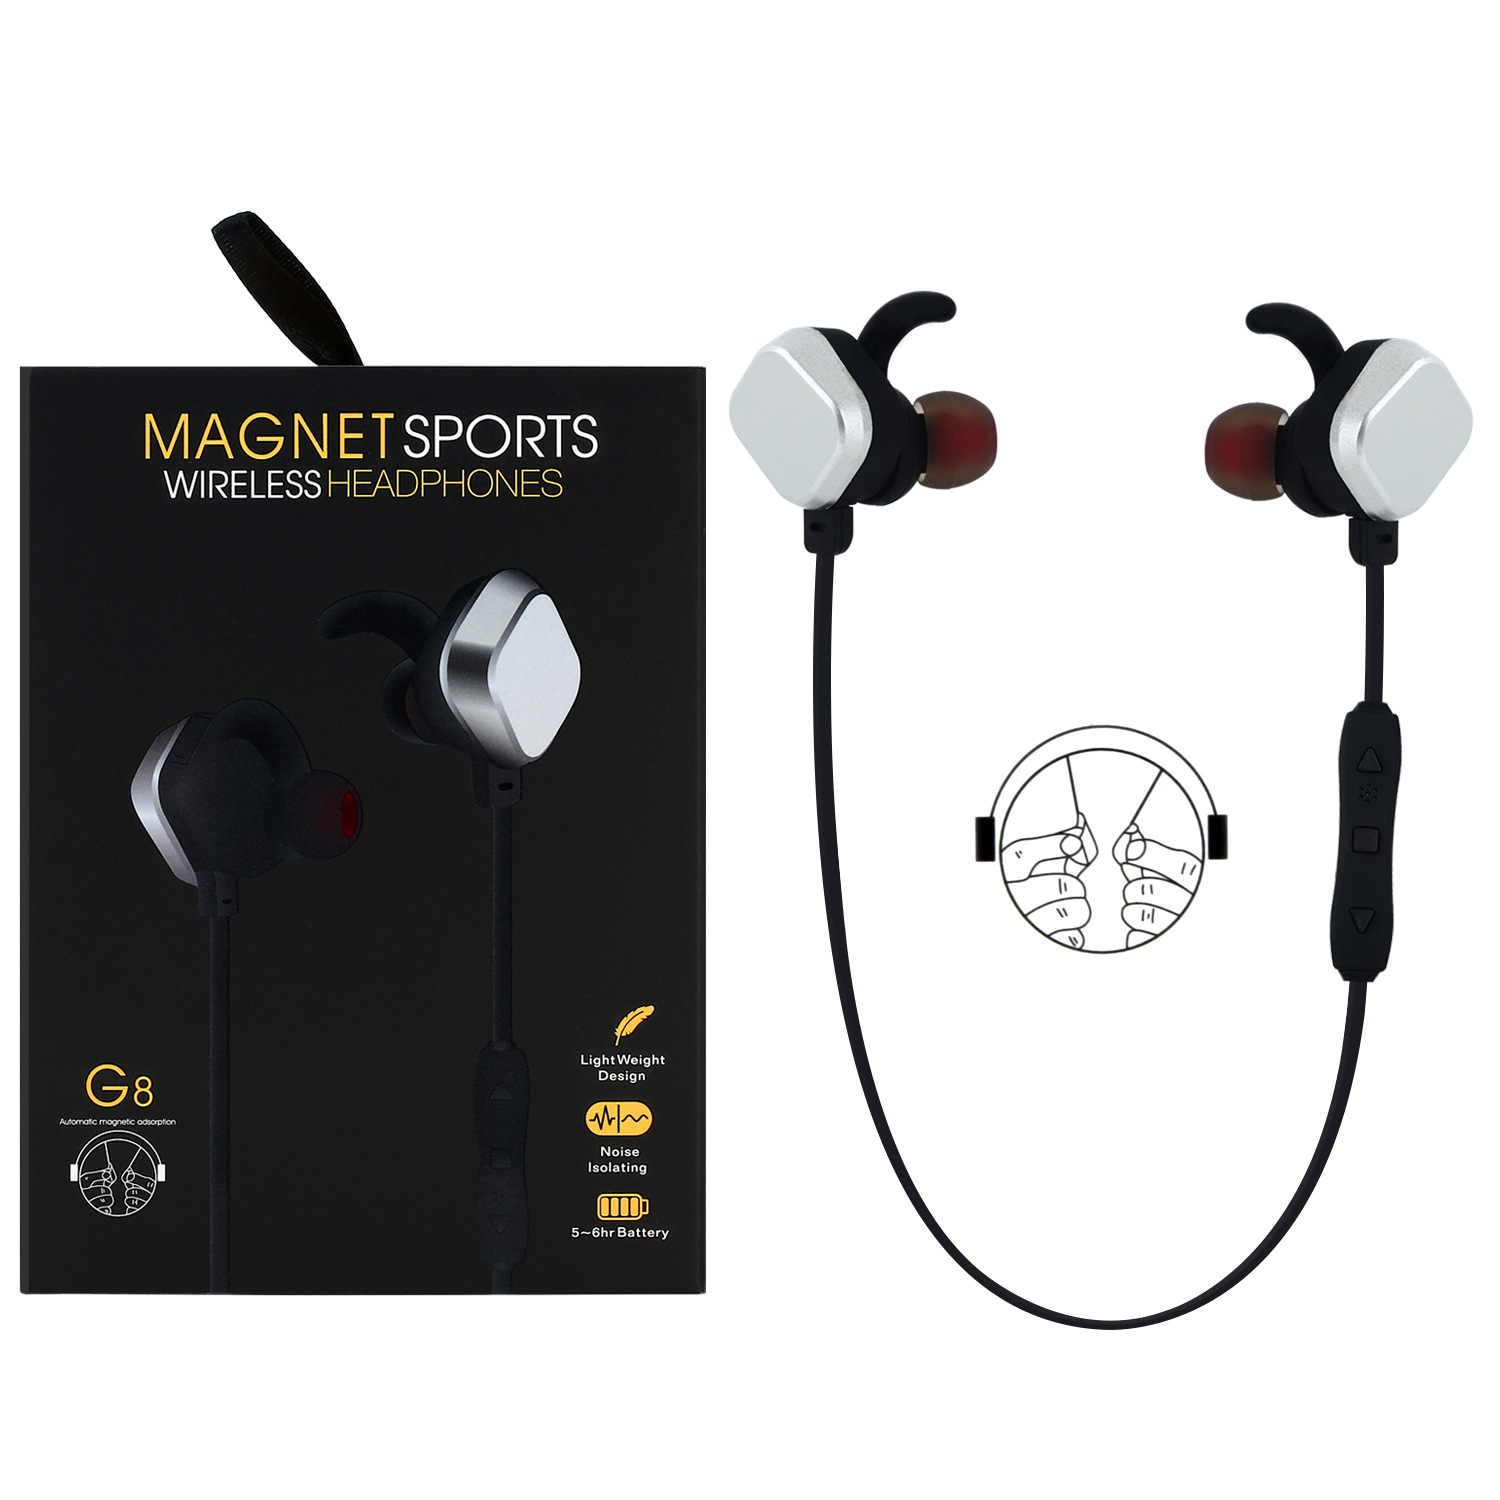 G8 Wireless sports bluetooth headphone stereo bluetooth headset magnet earphone for phone